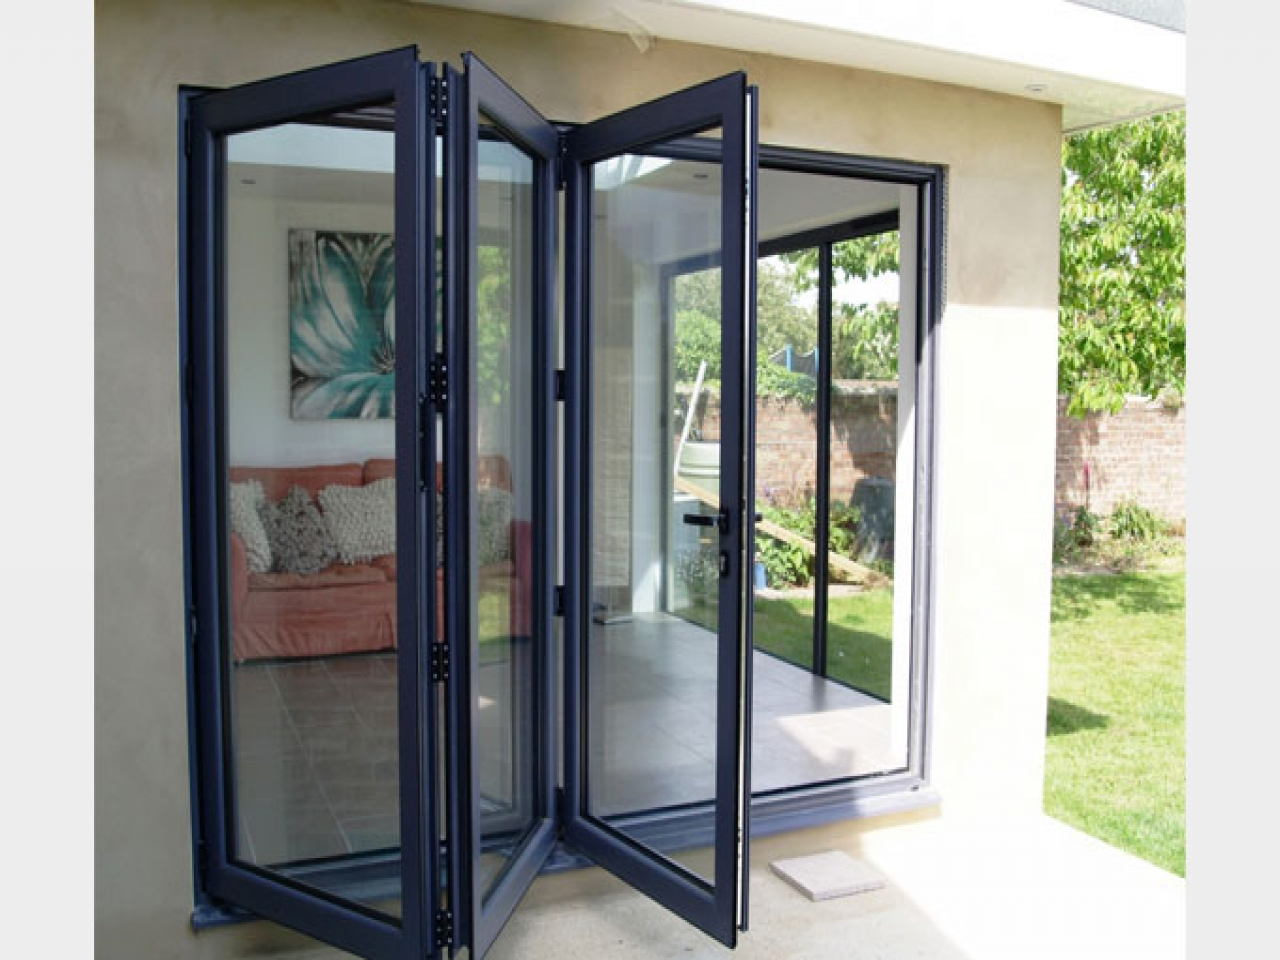 Residential windows doors south coast windows doors for Glass windows and doors